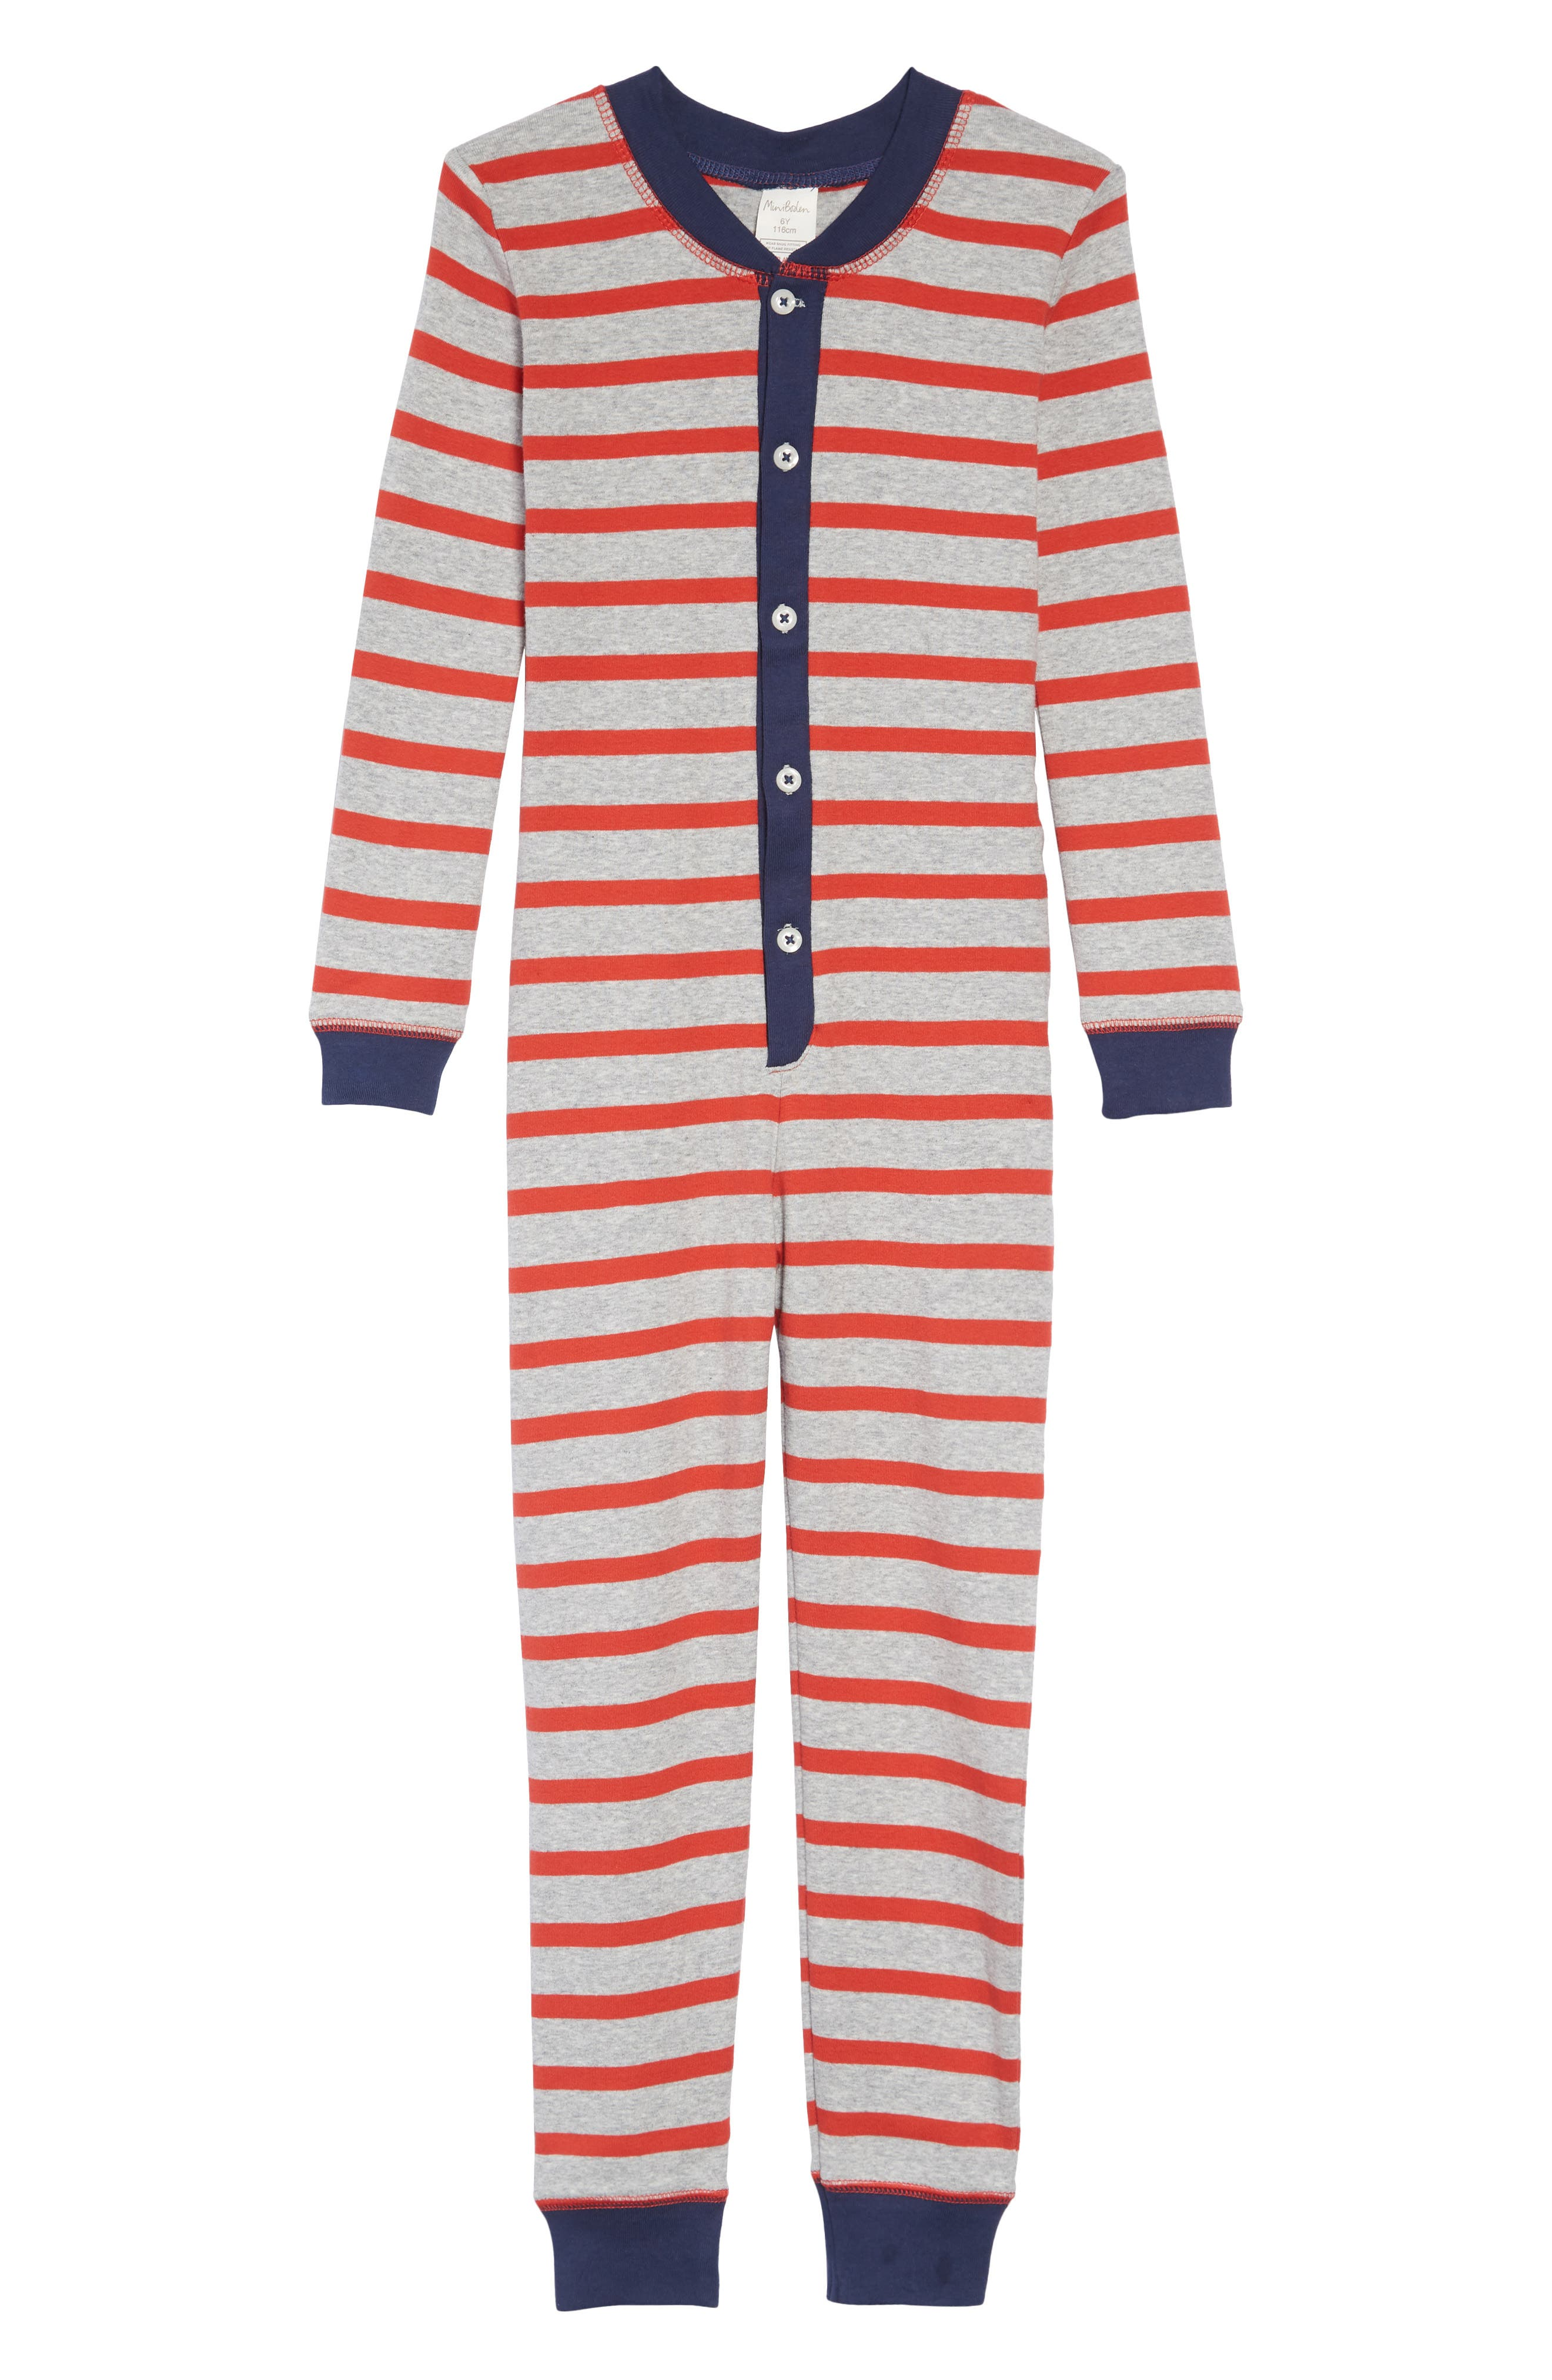 MINI BODEN,                             Cosy Sleep Fitted One-Piece Pajamas,                             Main thumbnail 1, color,                             054